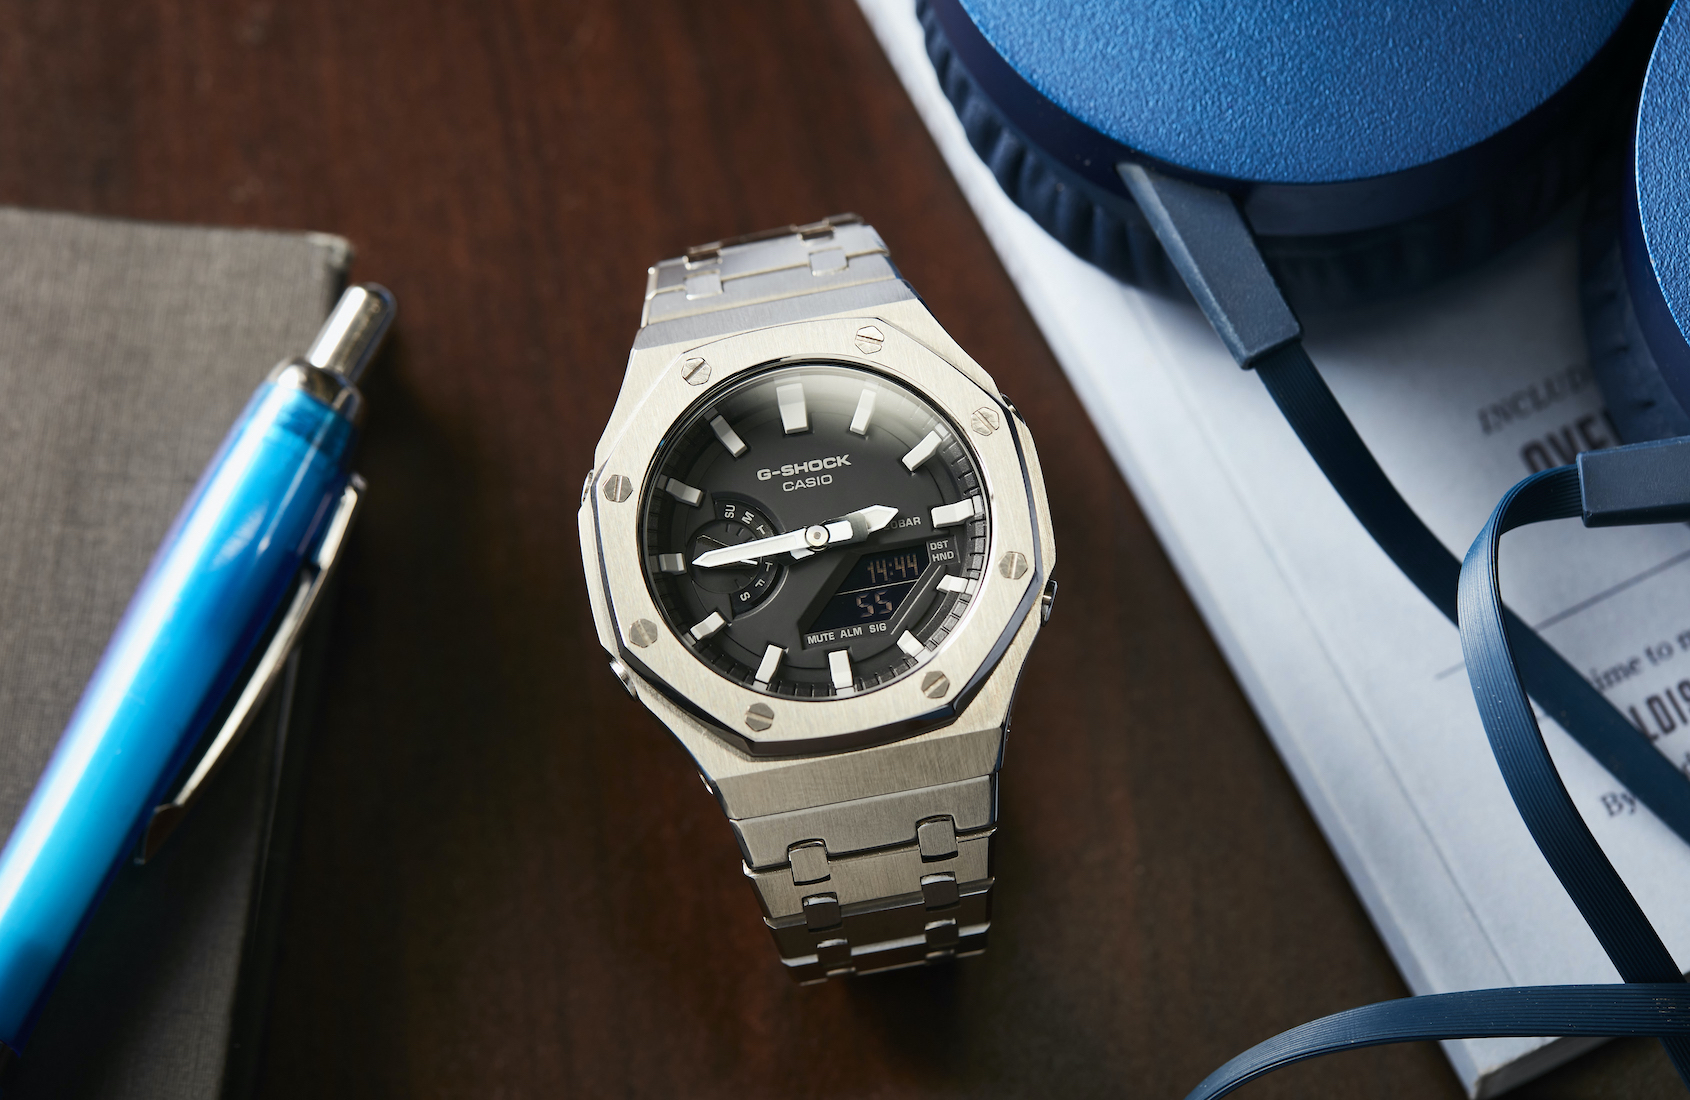 COLLECTING STORIES: A G-Shock CasiOak modification that pushes the Genta levels up to 11